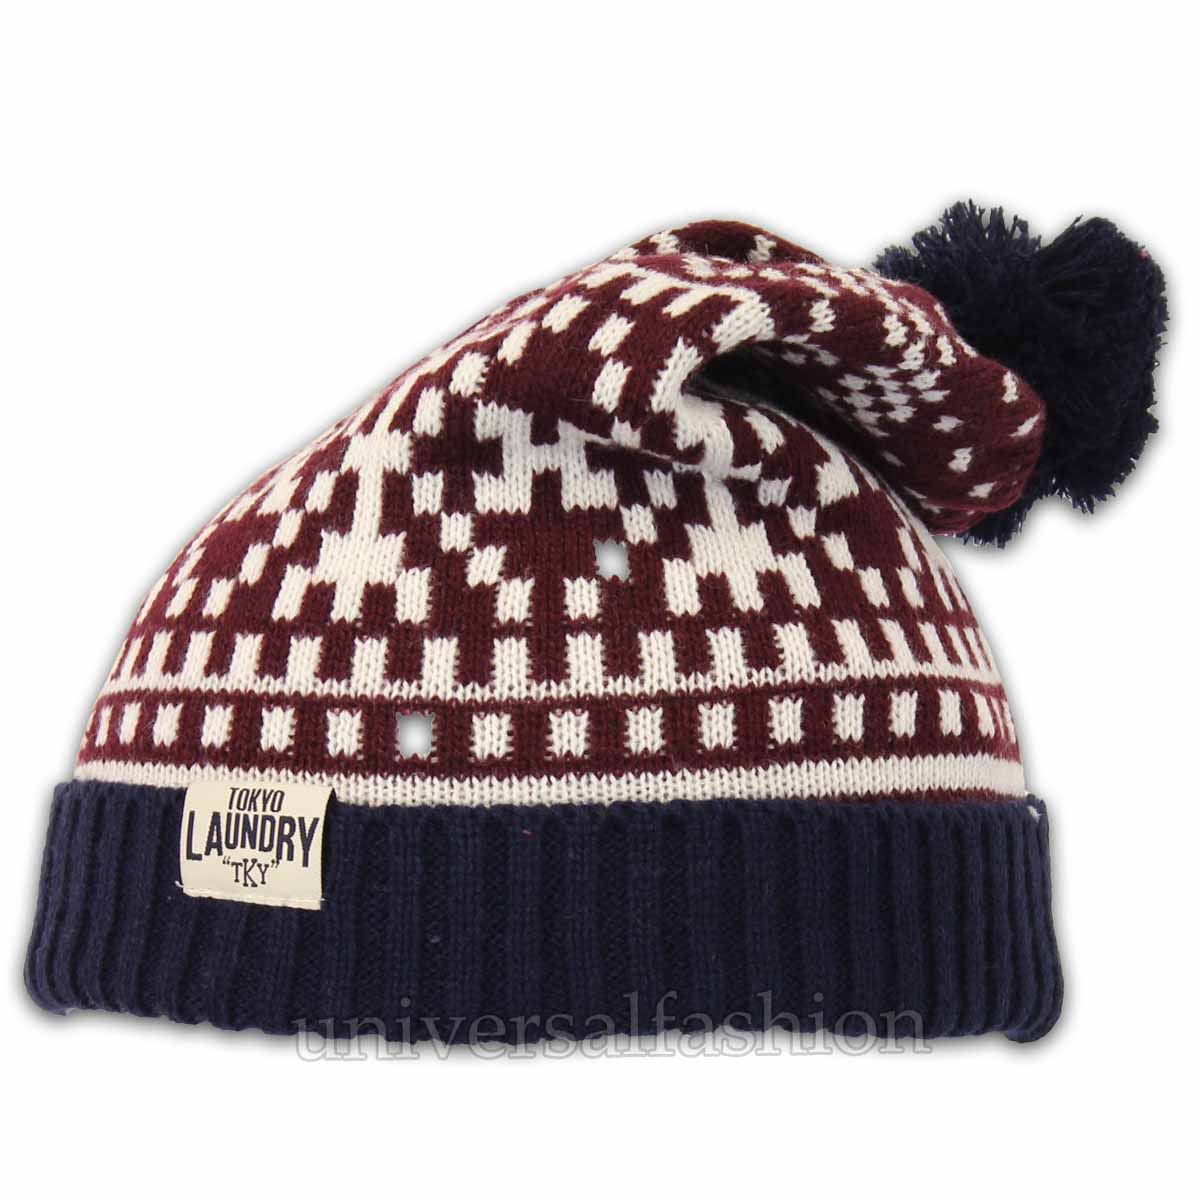 For A Lined Knitted Hat Pattern